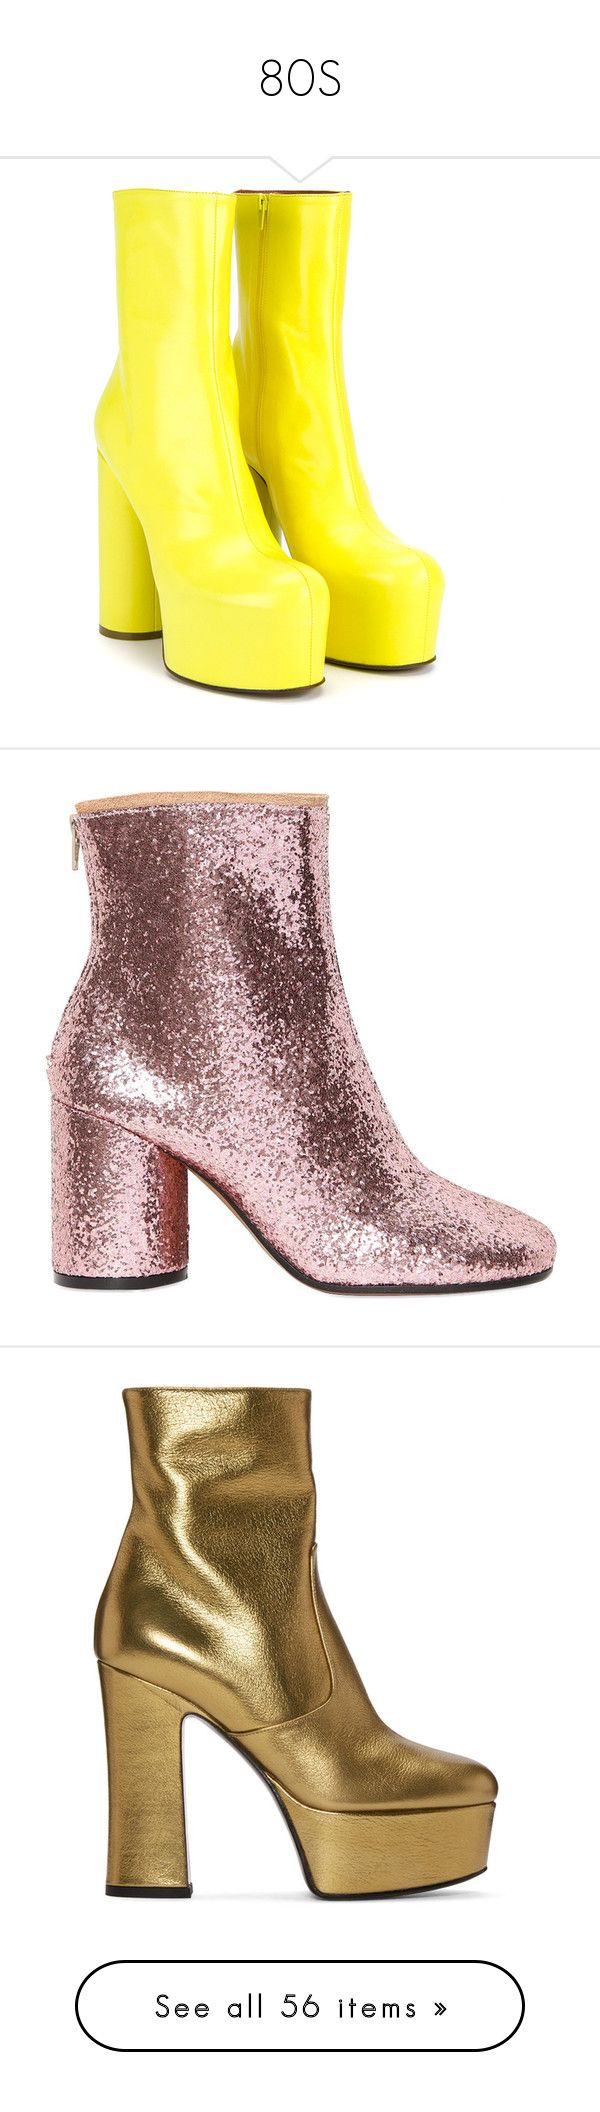 """""""80S"""" by rosavage01 ❤ liked on Polyvore featuring shoes, boots, ankle booties, vetements, canary yellow, platform bootie, zip ankle boots, leather ankle boots, zipper ankle boots and platform ankle boots"""